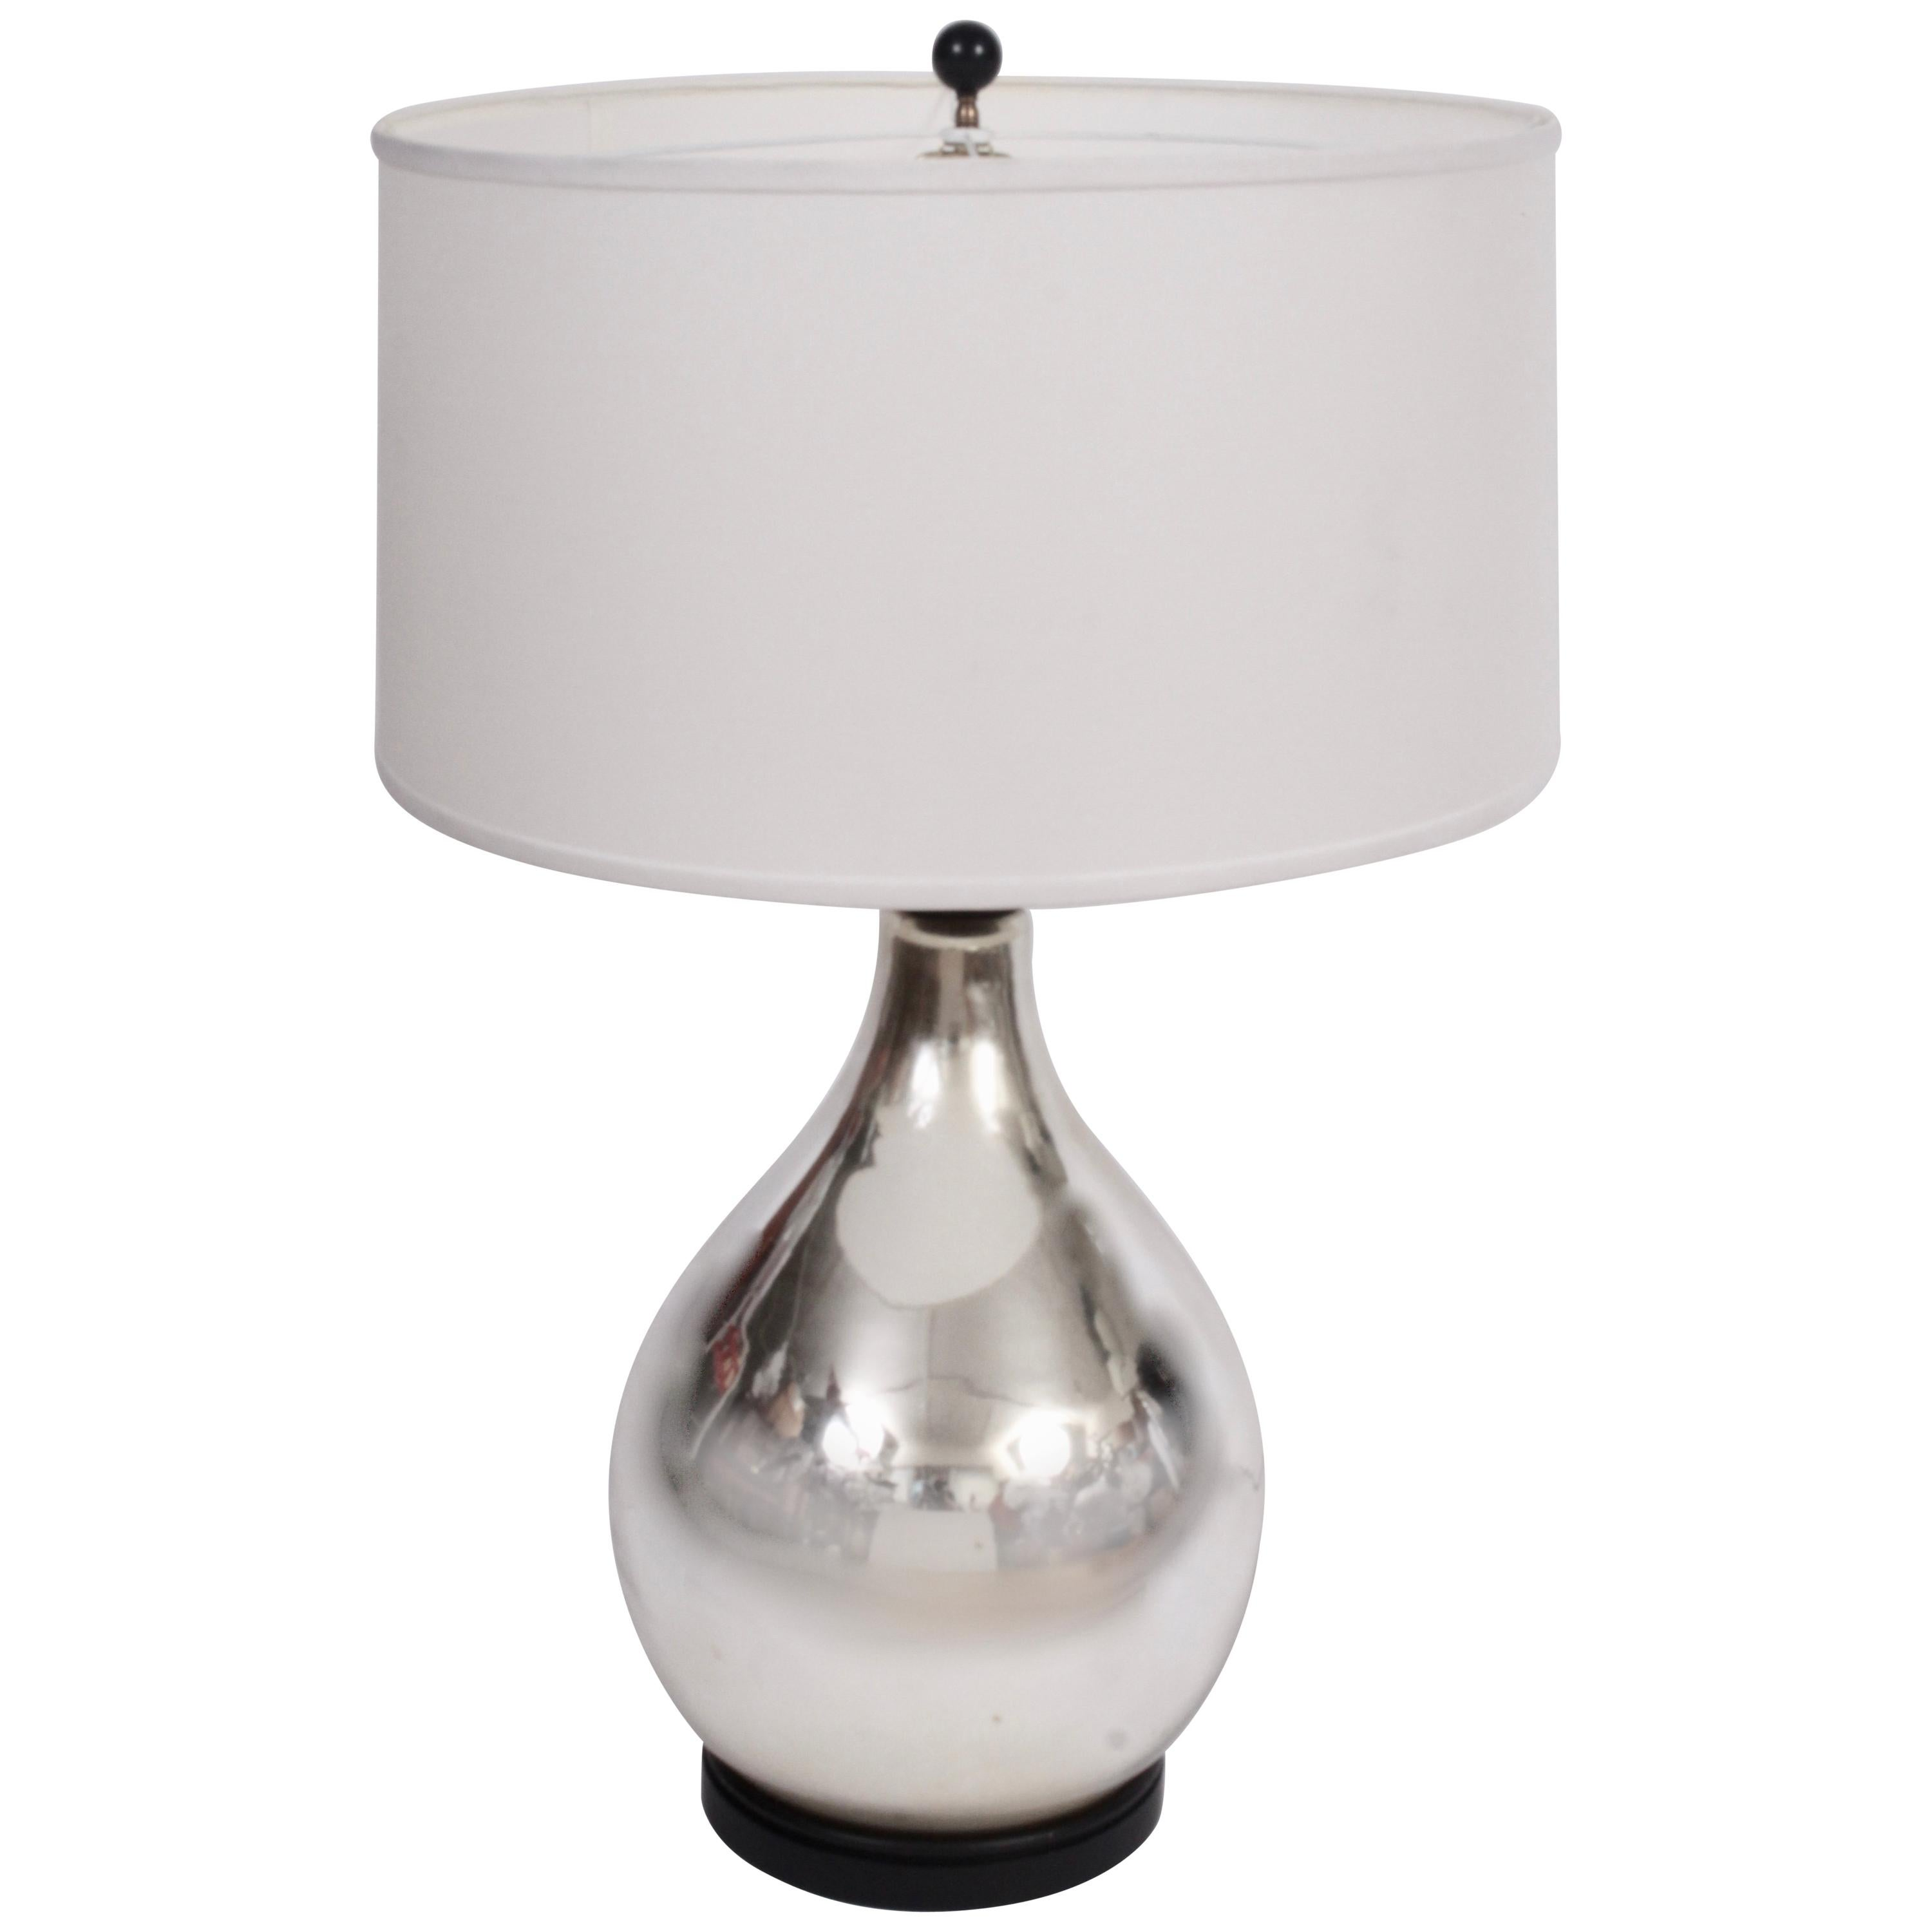 Image of: Large Chapman Manufacturing Co Mercury Glass Table Lamp 1970 S At 1stdibs